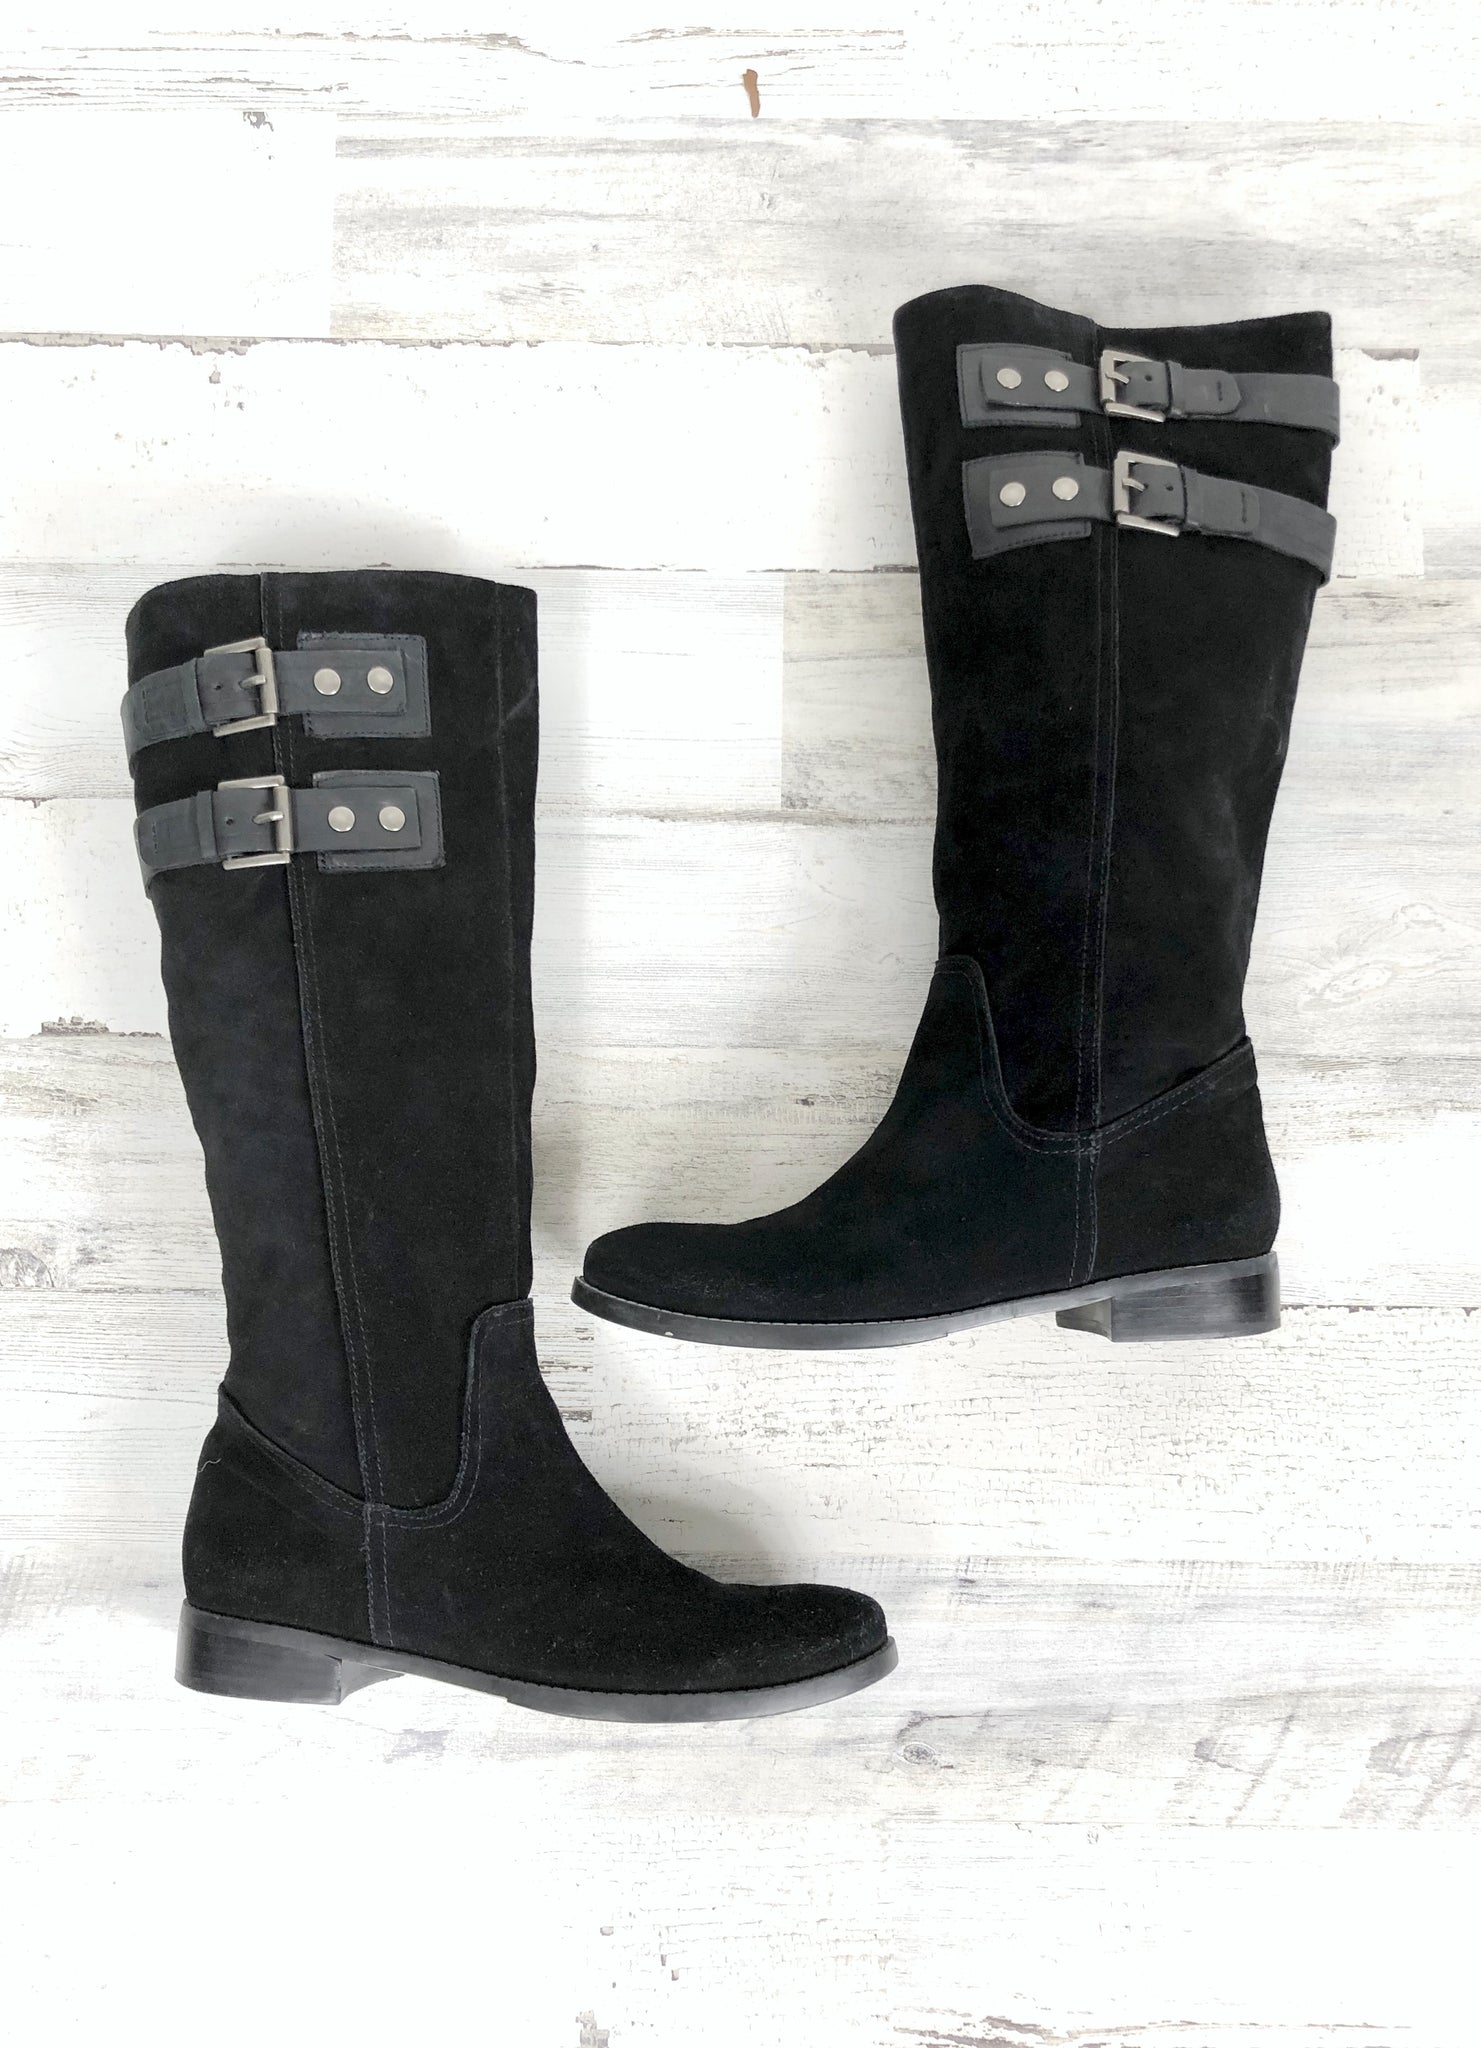 70965a8e1c9 Nine West Black Suede Buckle Riding Boots (9) – The Wandering ...